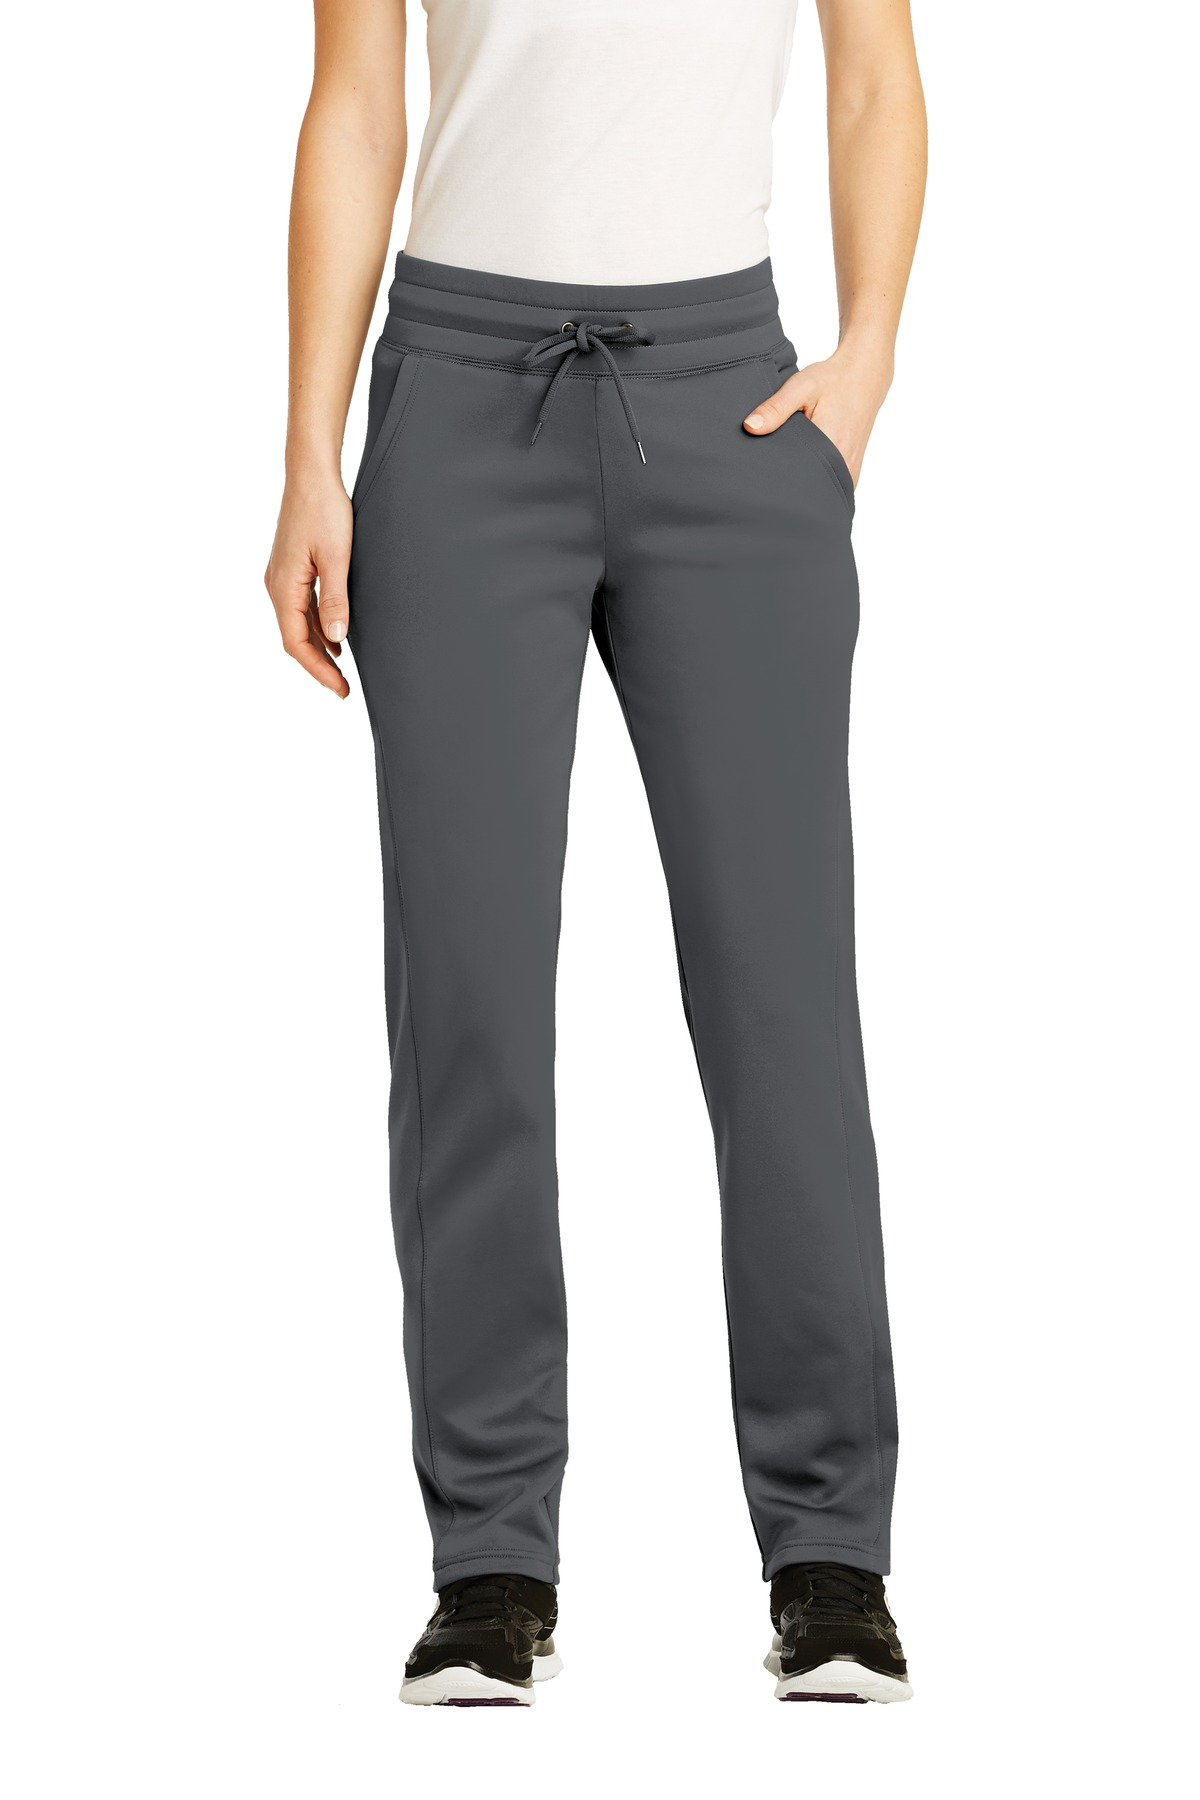 Sport-Tek ®  Ladies Sport-Wick ®  Fleece Pant. LST237 - Dark Smoke Grey